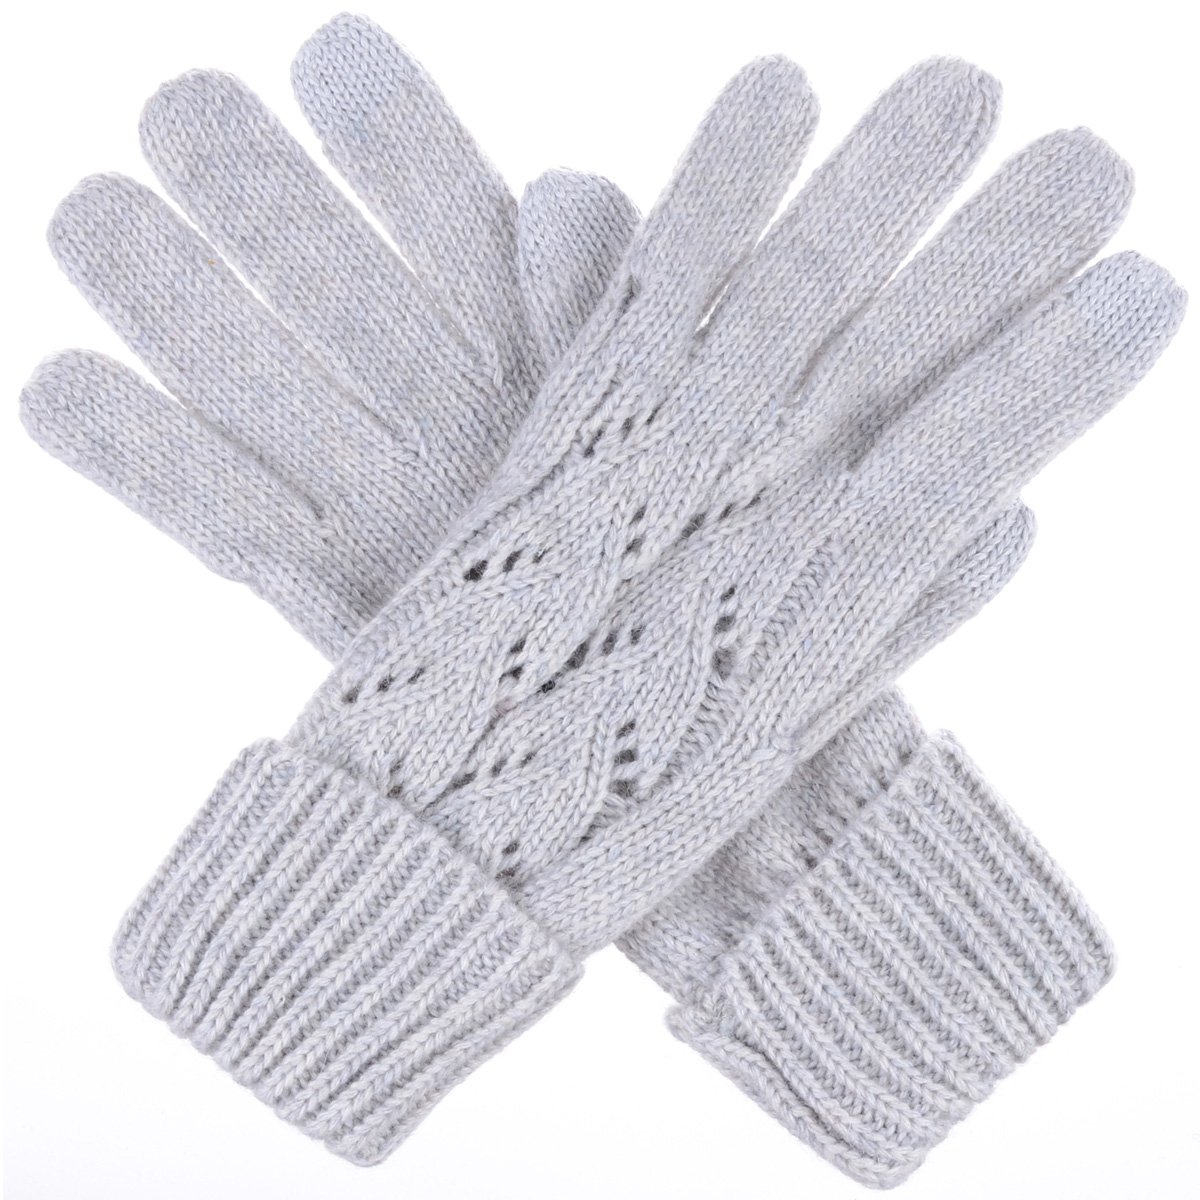 BYOS Women Winter Wool Blend Cable & Leafy Pattern Texting Knit Gloves w/ Two Fingertips Conductive Tech for All Touch-Screen Devices Smartphone & Tablet (Gray Leafy)